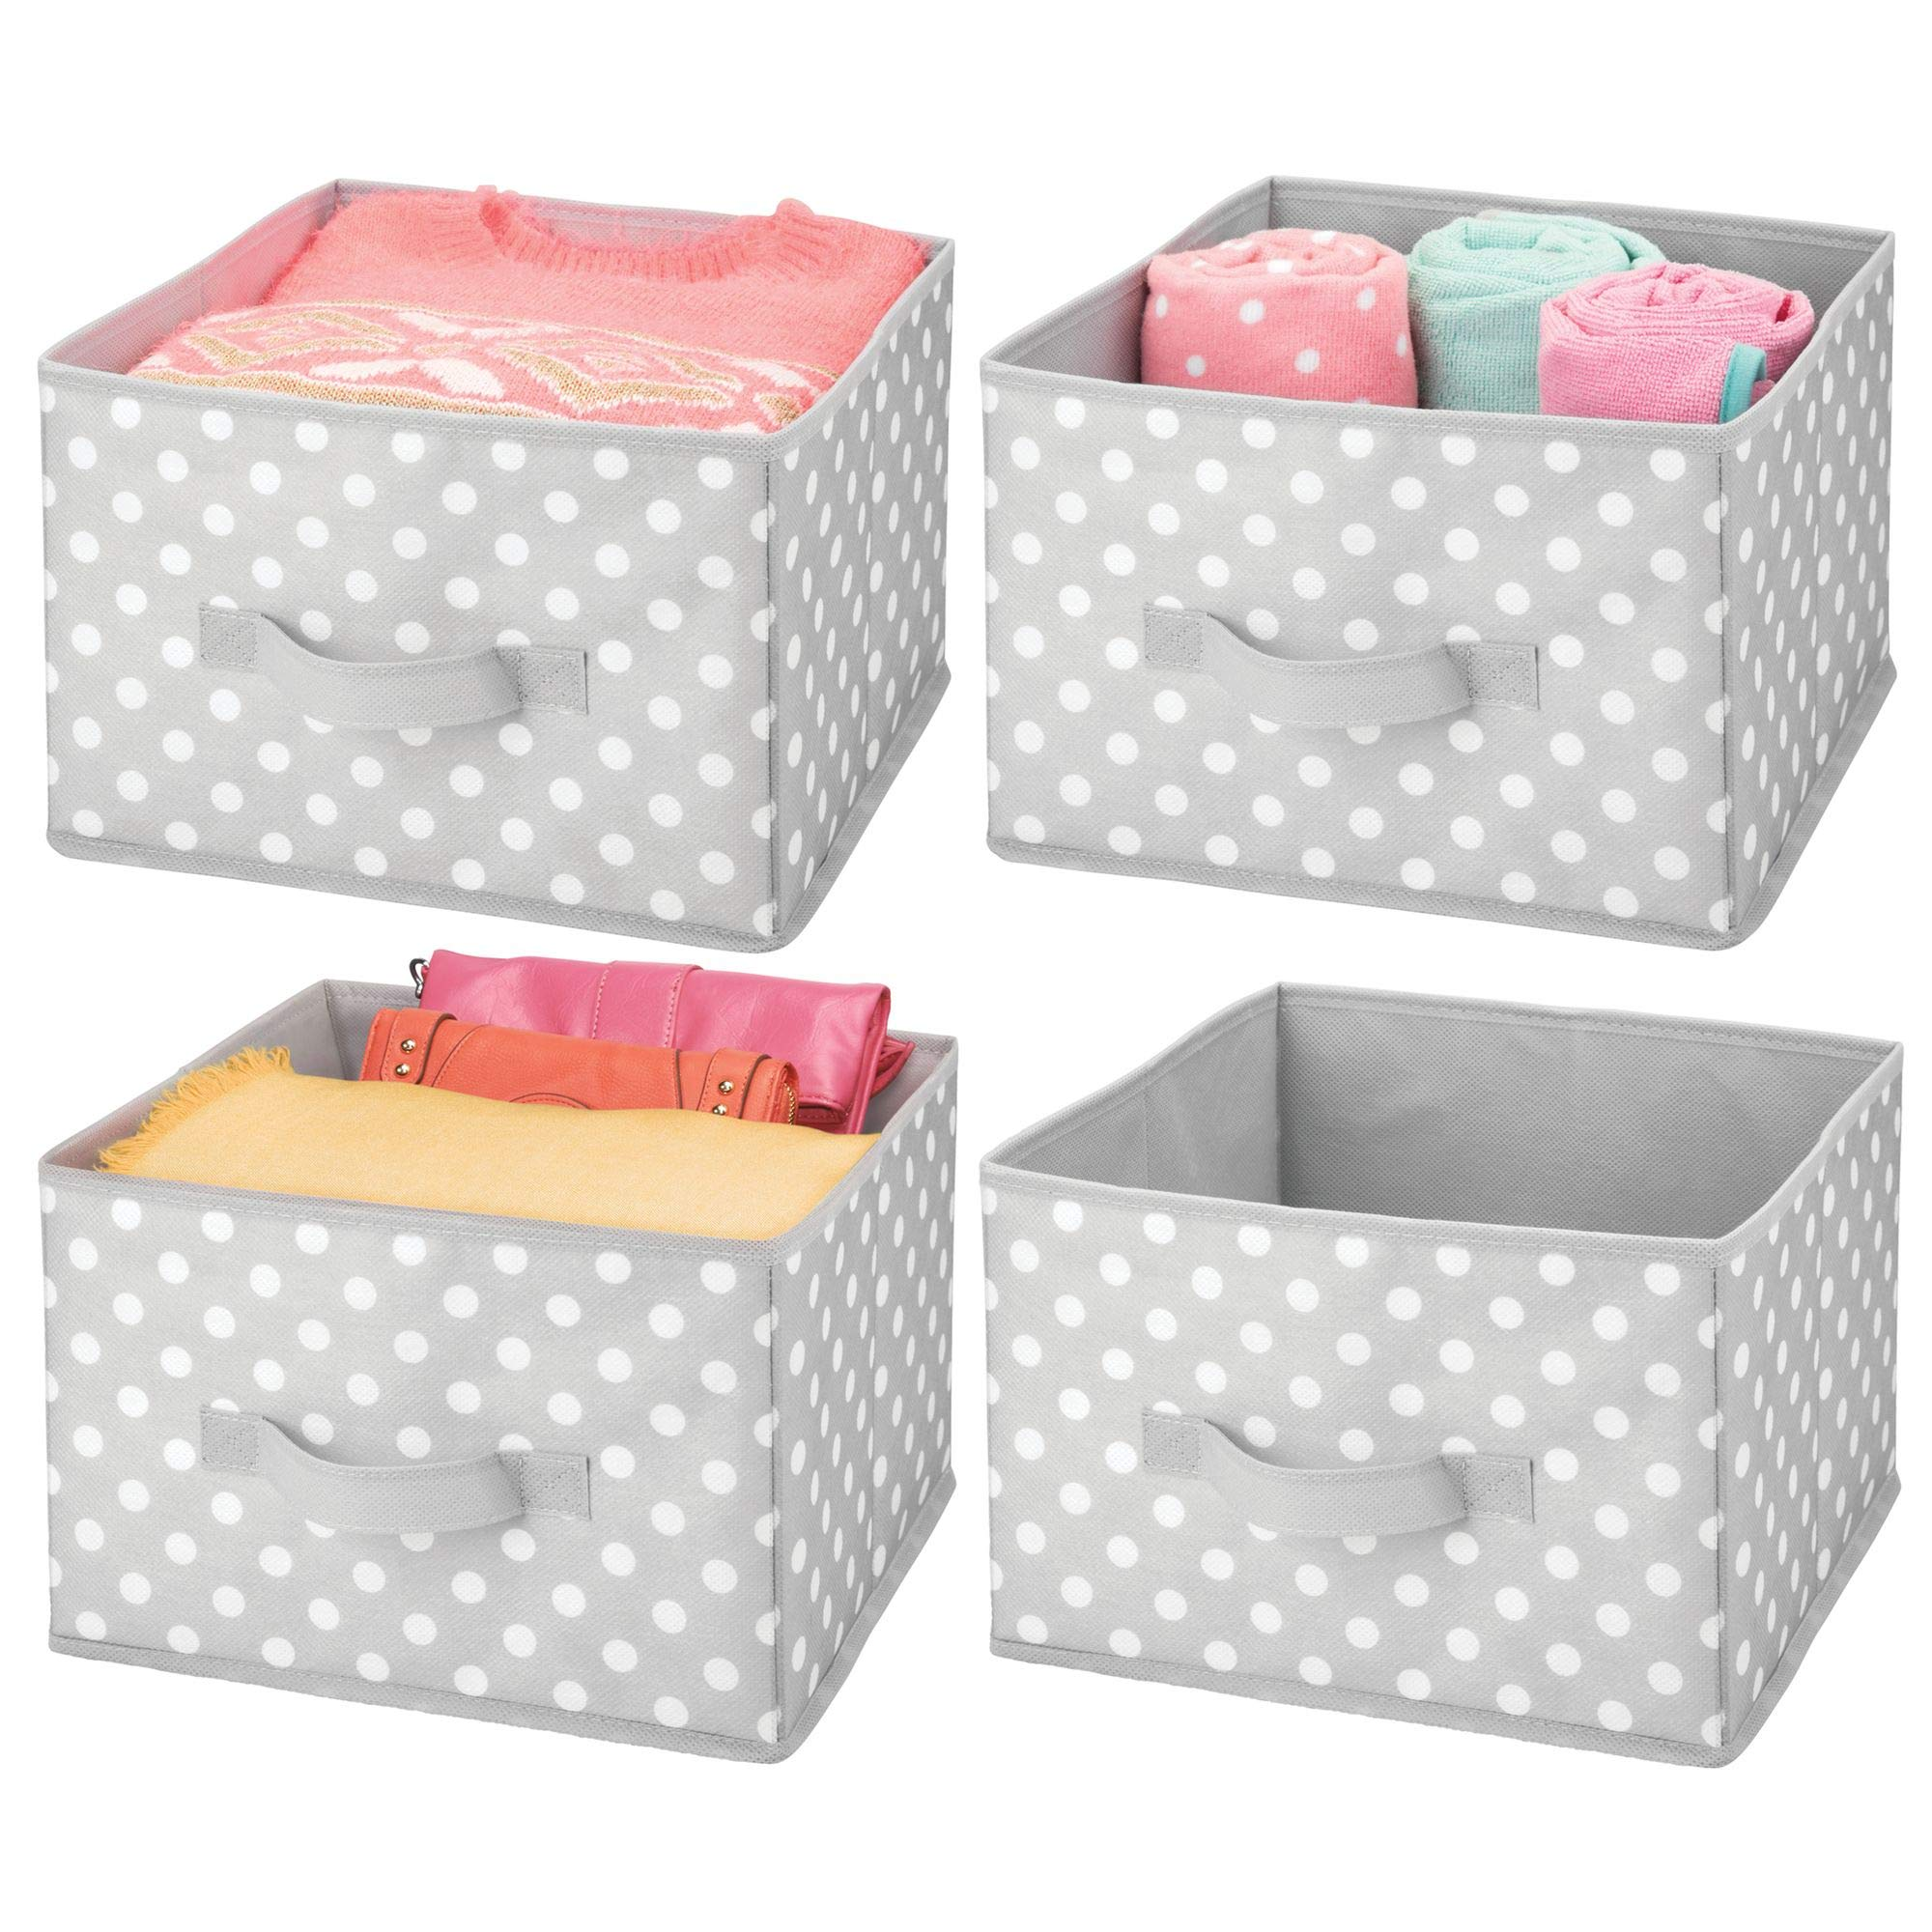 mDesign Soft Fabric Closet Storage Organizer Holder Box Bin - Attached Handle, Open Top, for Child/Kids Bedroom, Nursery, Toy Room - Fun Polka Dot Pattern - Medium, Pack of 4, Gray with White Dots